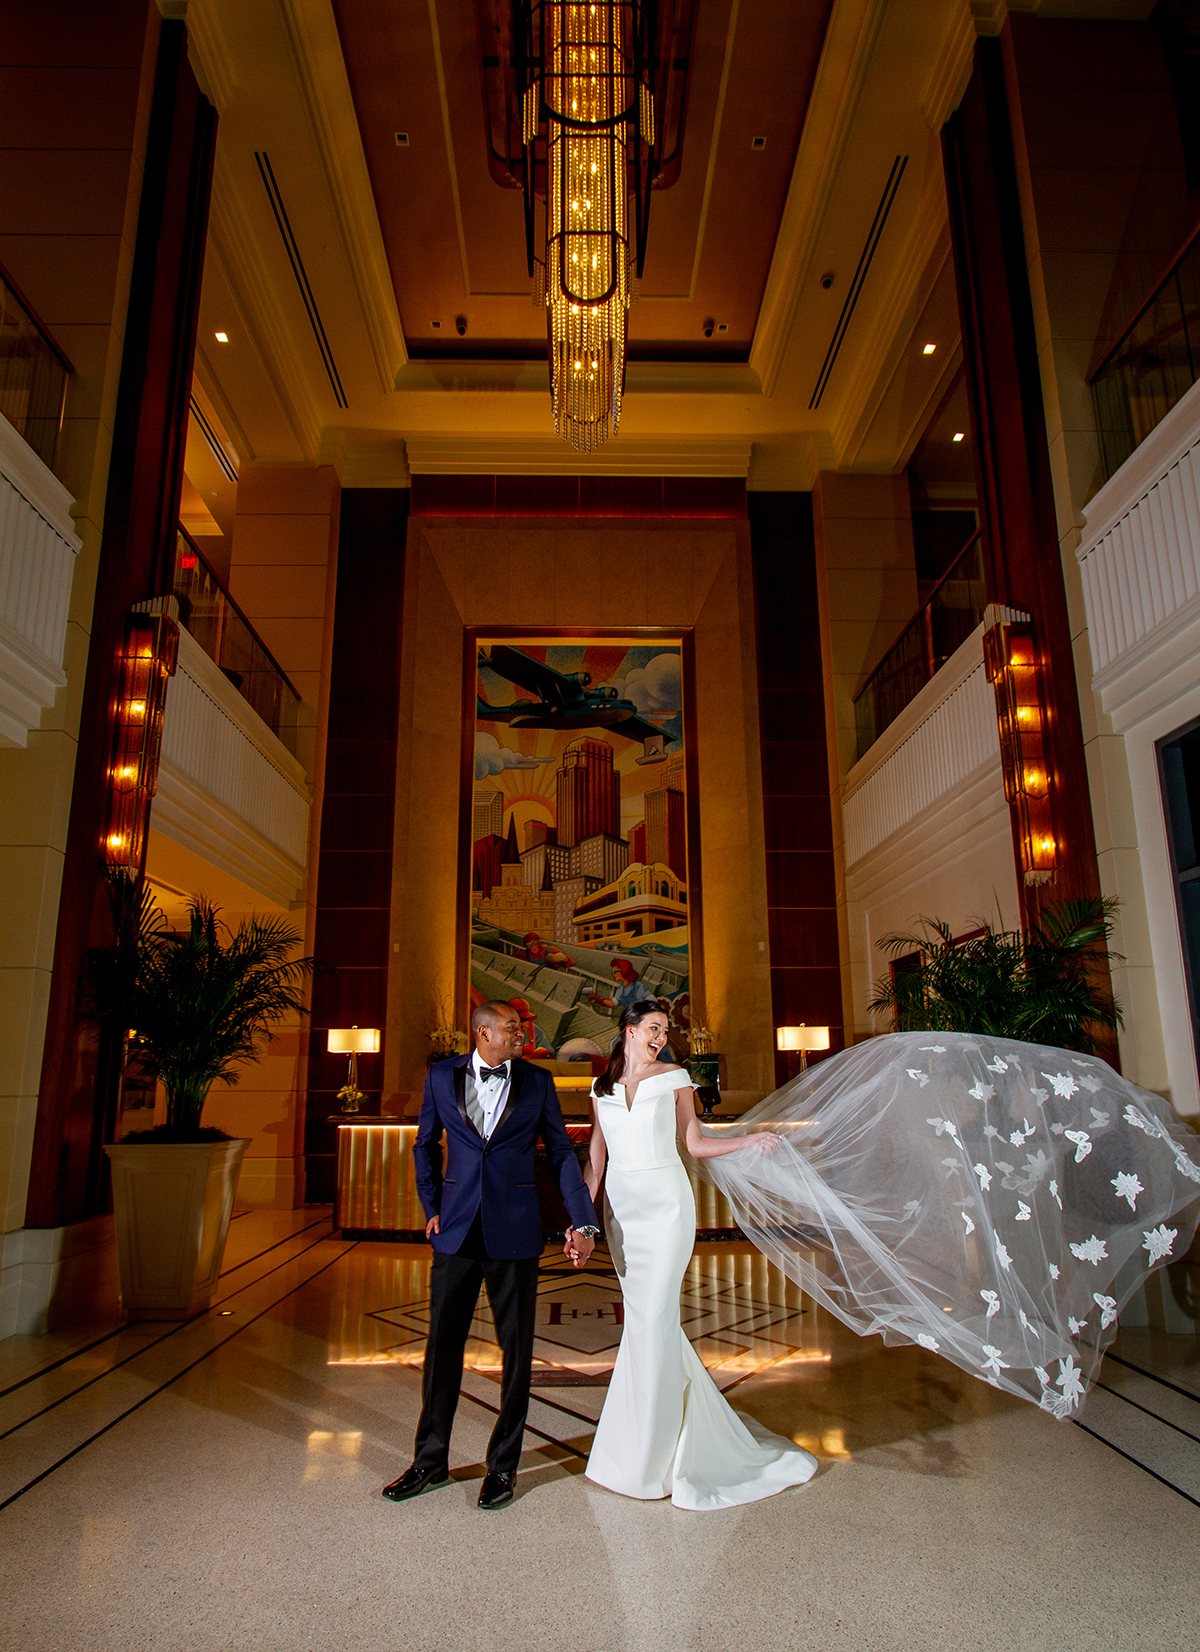 A bride and groom in the lobby of the Higgins Hotel (from the cover of New Orleans Weddings Magazine Spring 2020 Issue). Photo: Jessica The Photographer